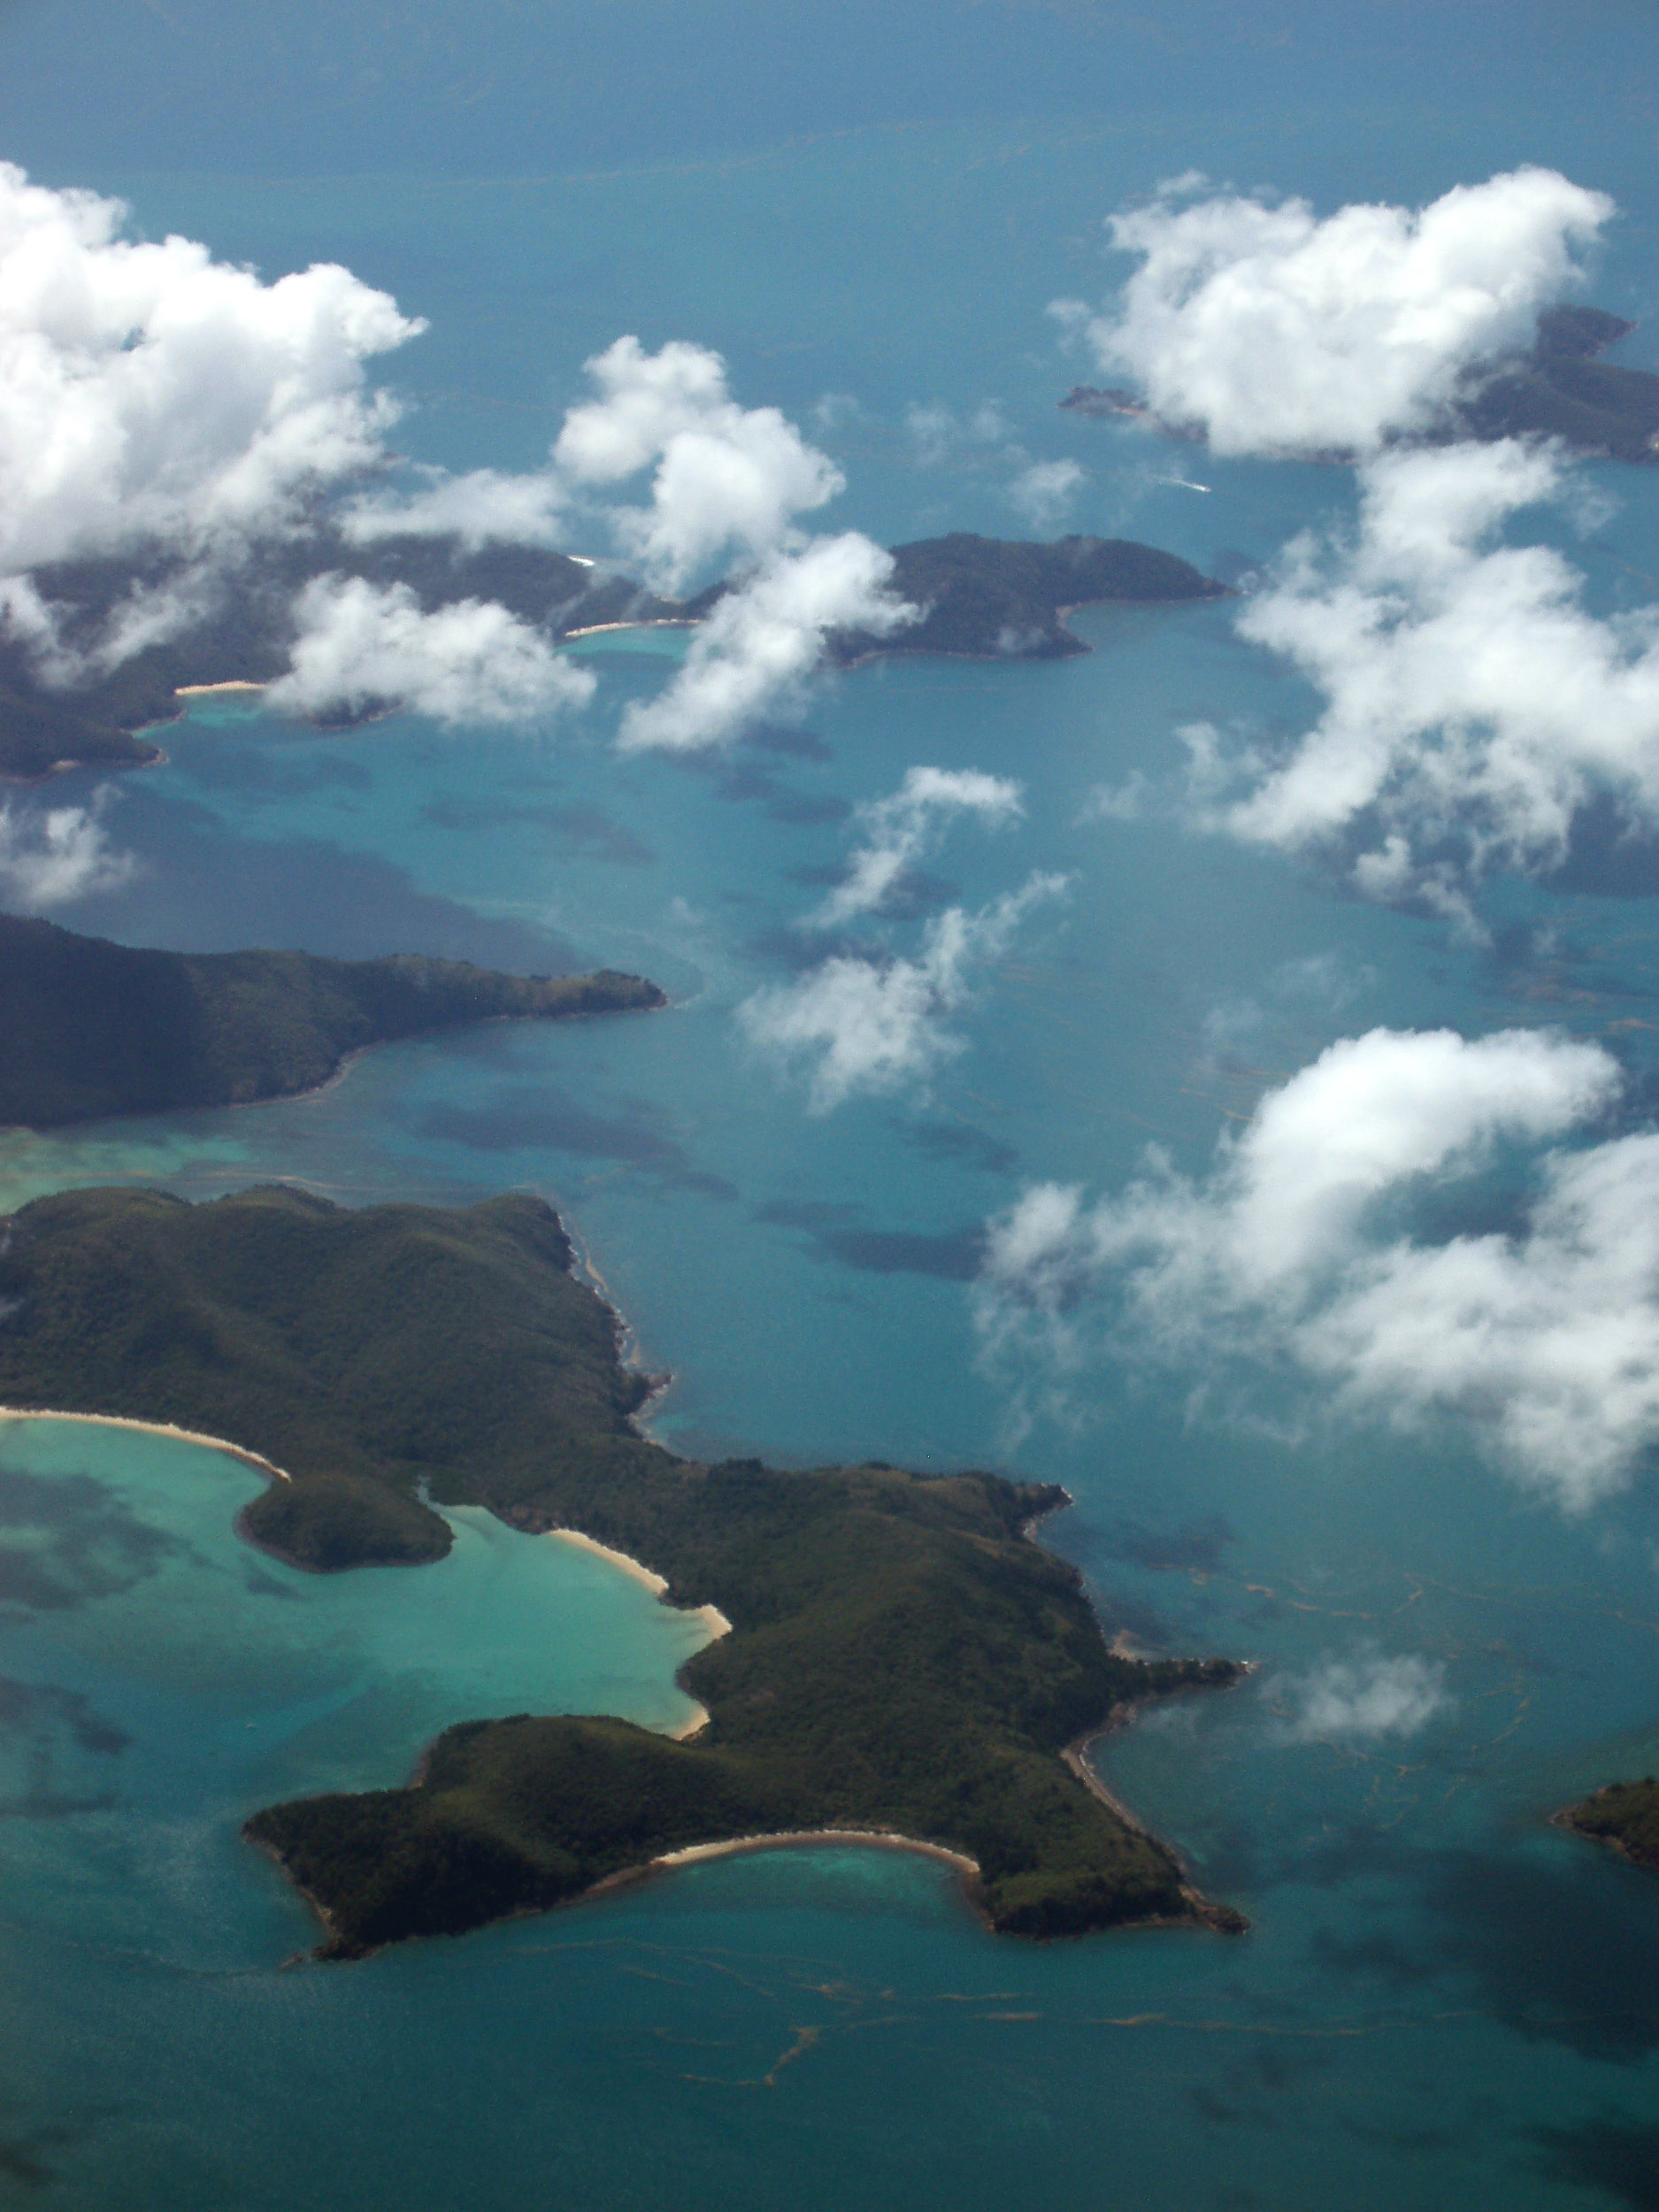 goldsmith island in the whitsundays, queensland,